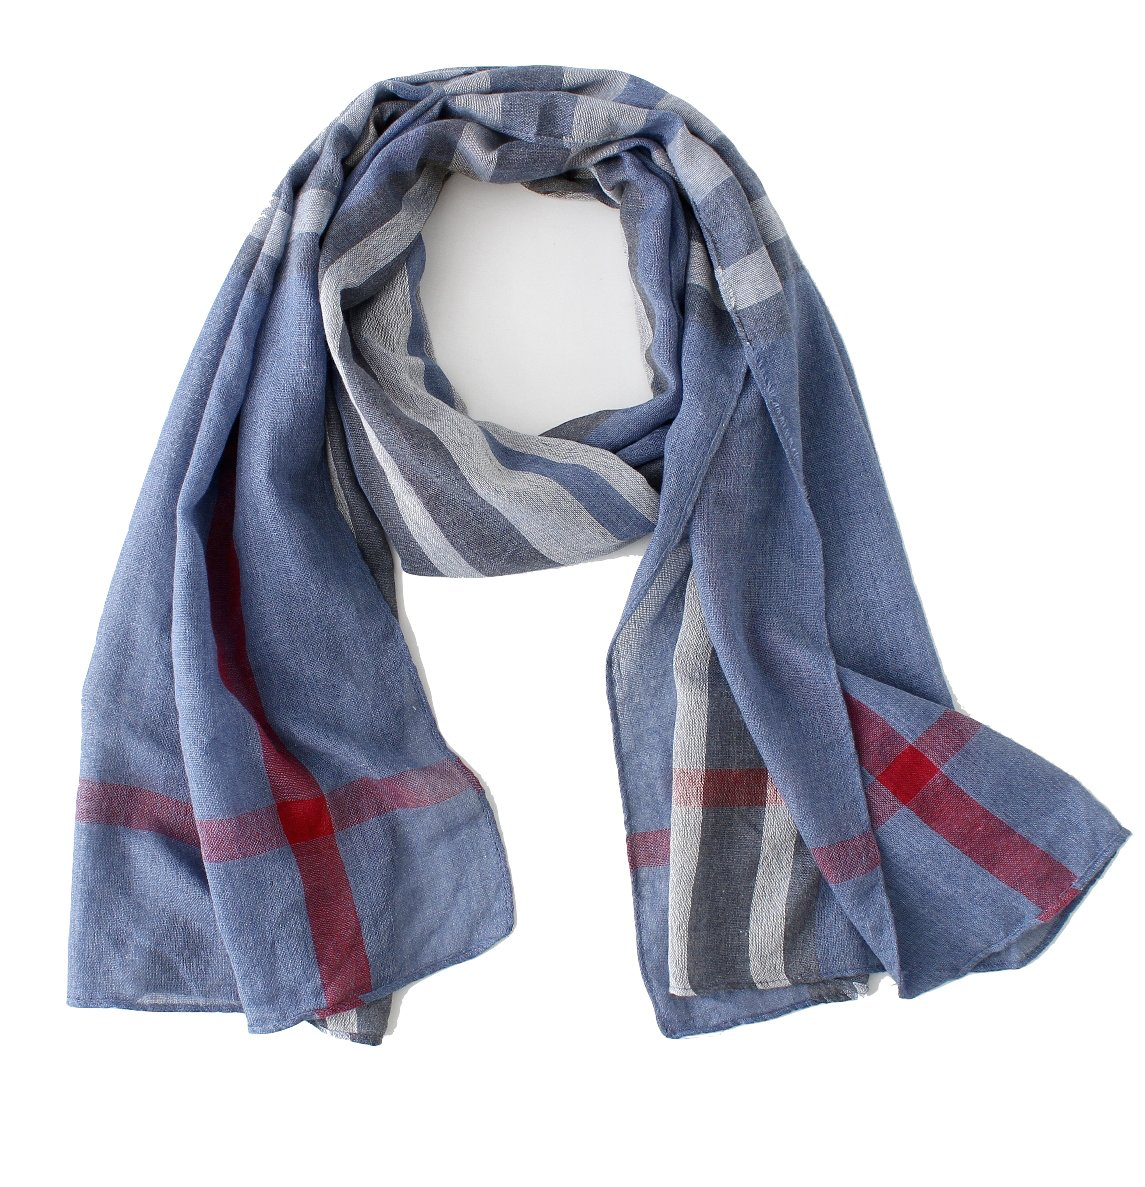 Cotton Scarf Shawl Wrap Soft Lightweight Scarves And Wraps For Men And Women. (Blue plaid)